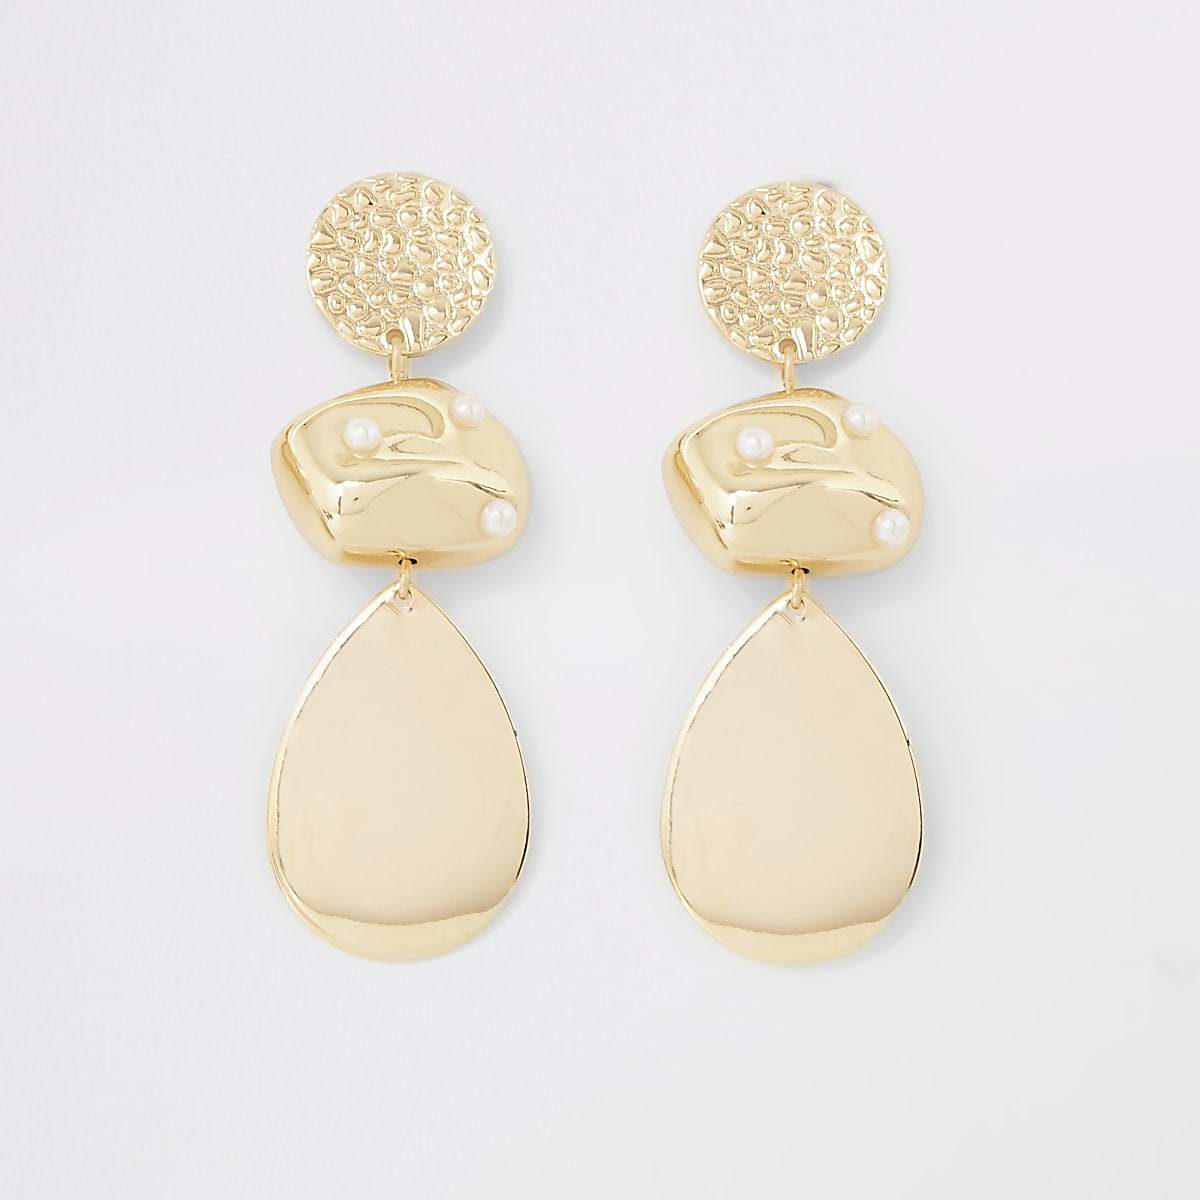 Gold color scattered pearl drop earrings